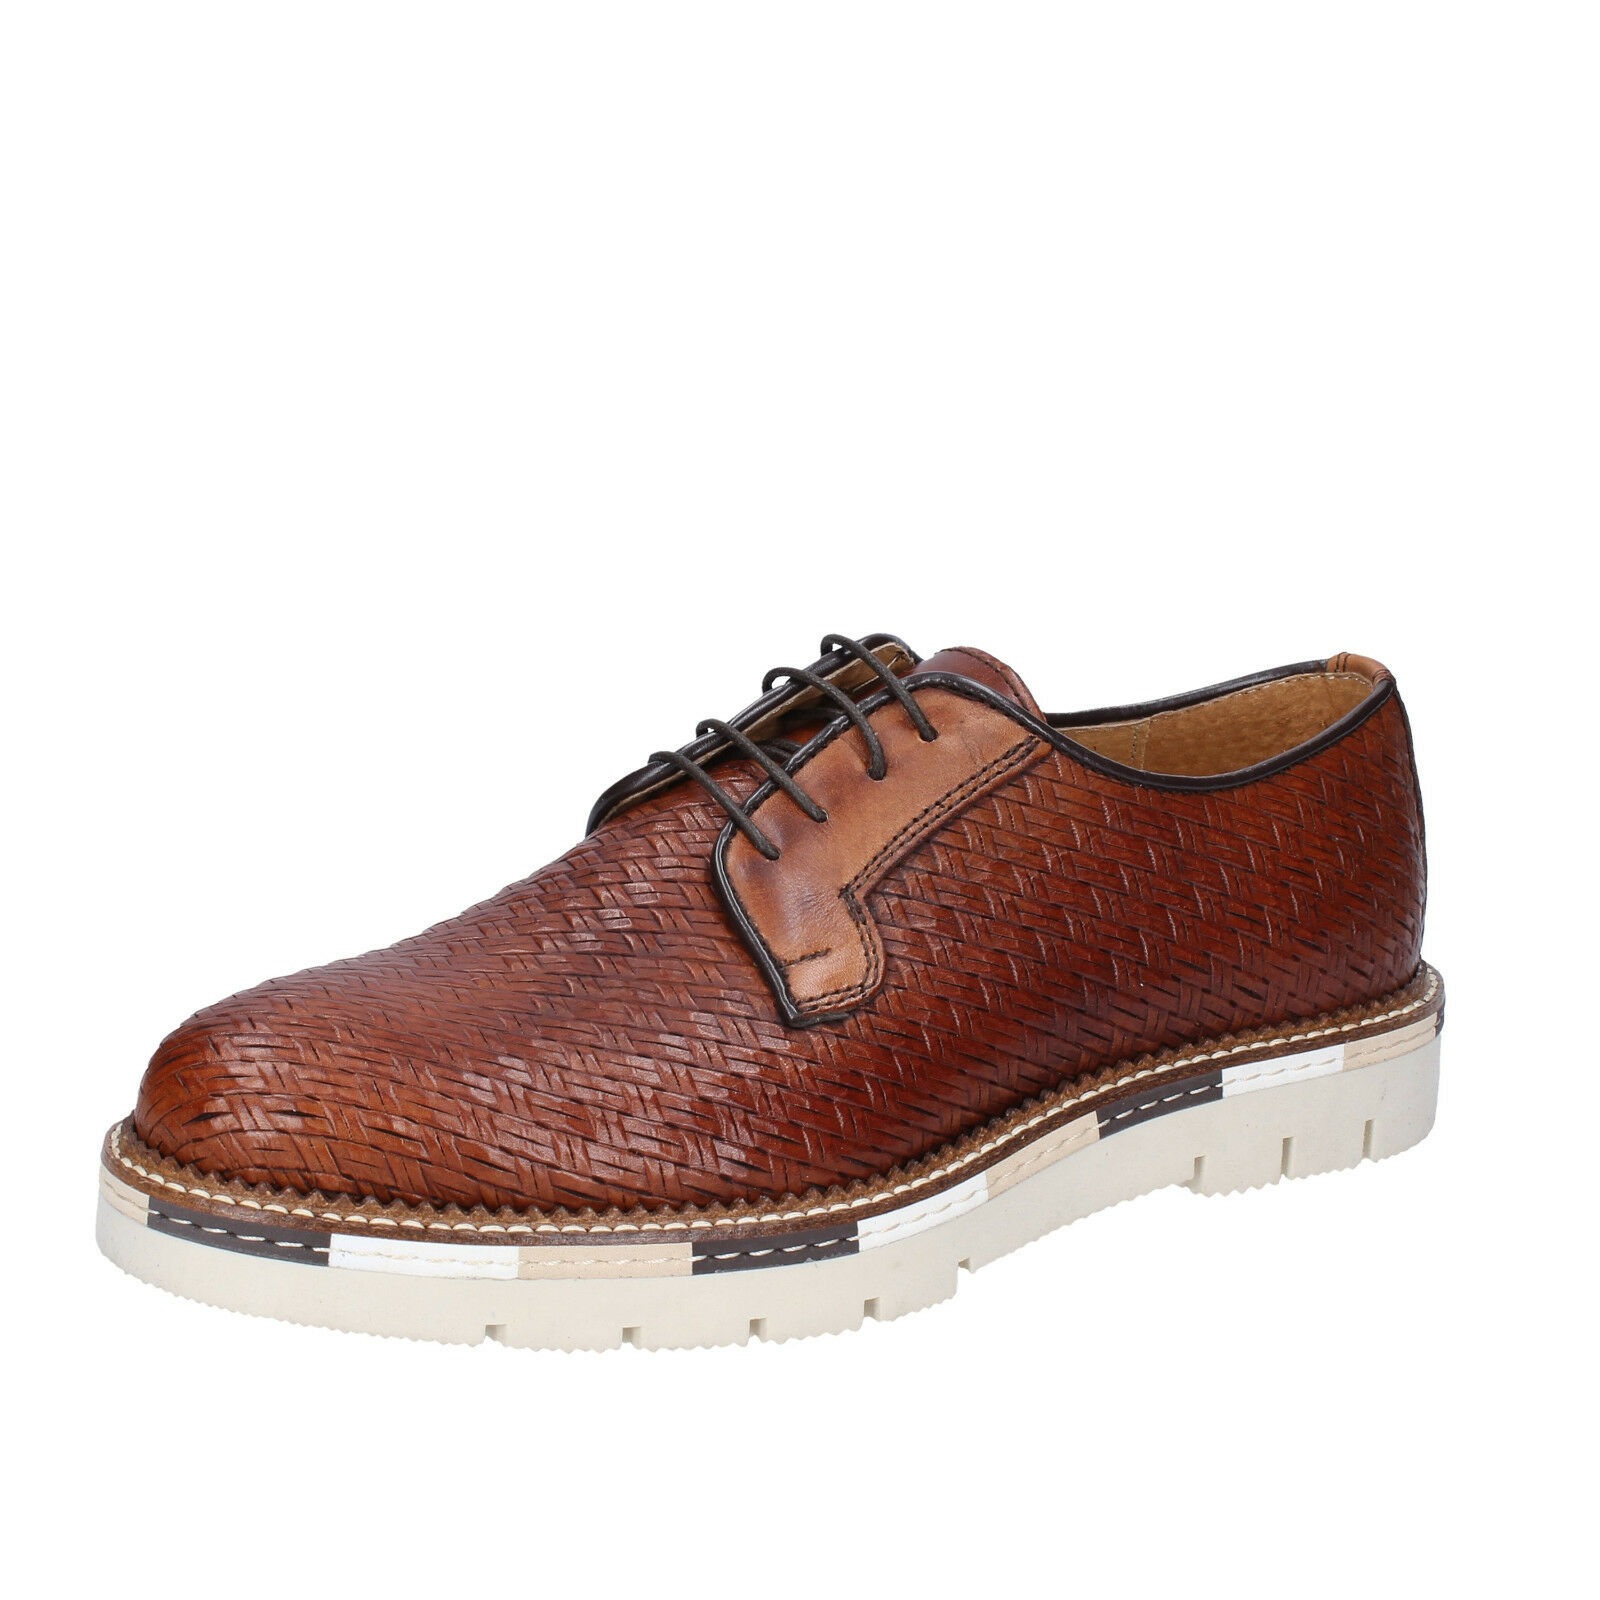 Mens shoes OSSIANI 5 (EU 39) elegant brown leather BT850-39